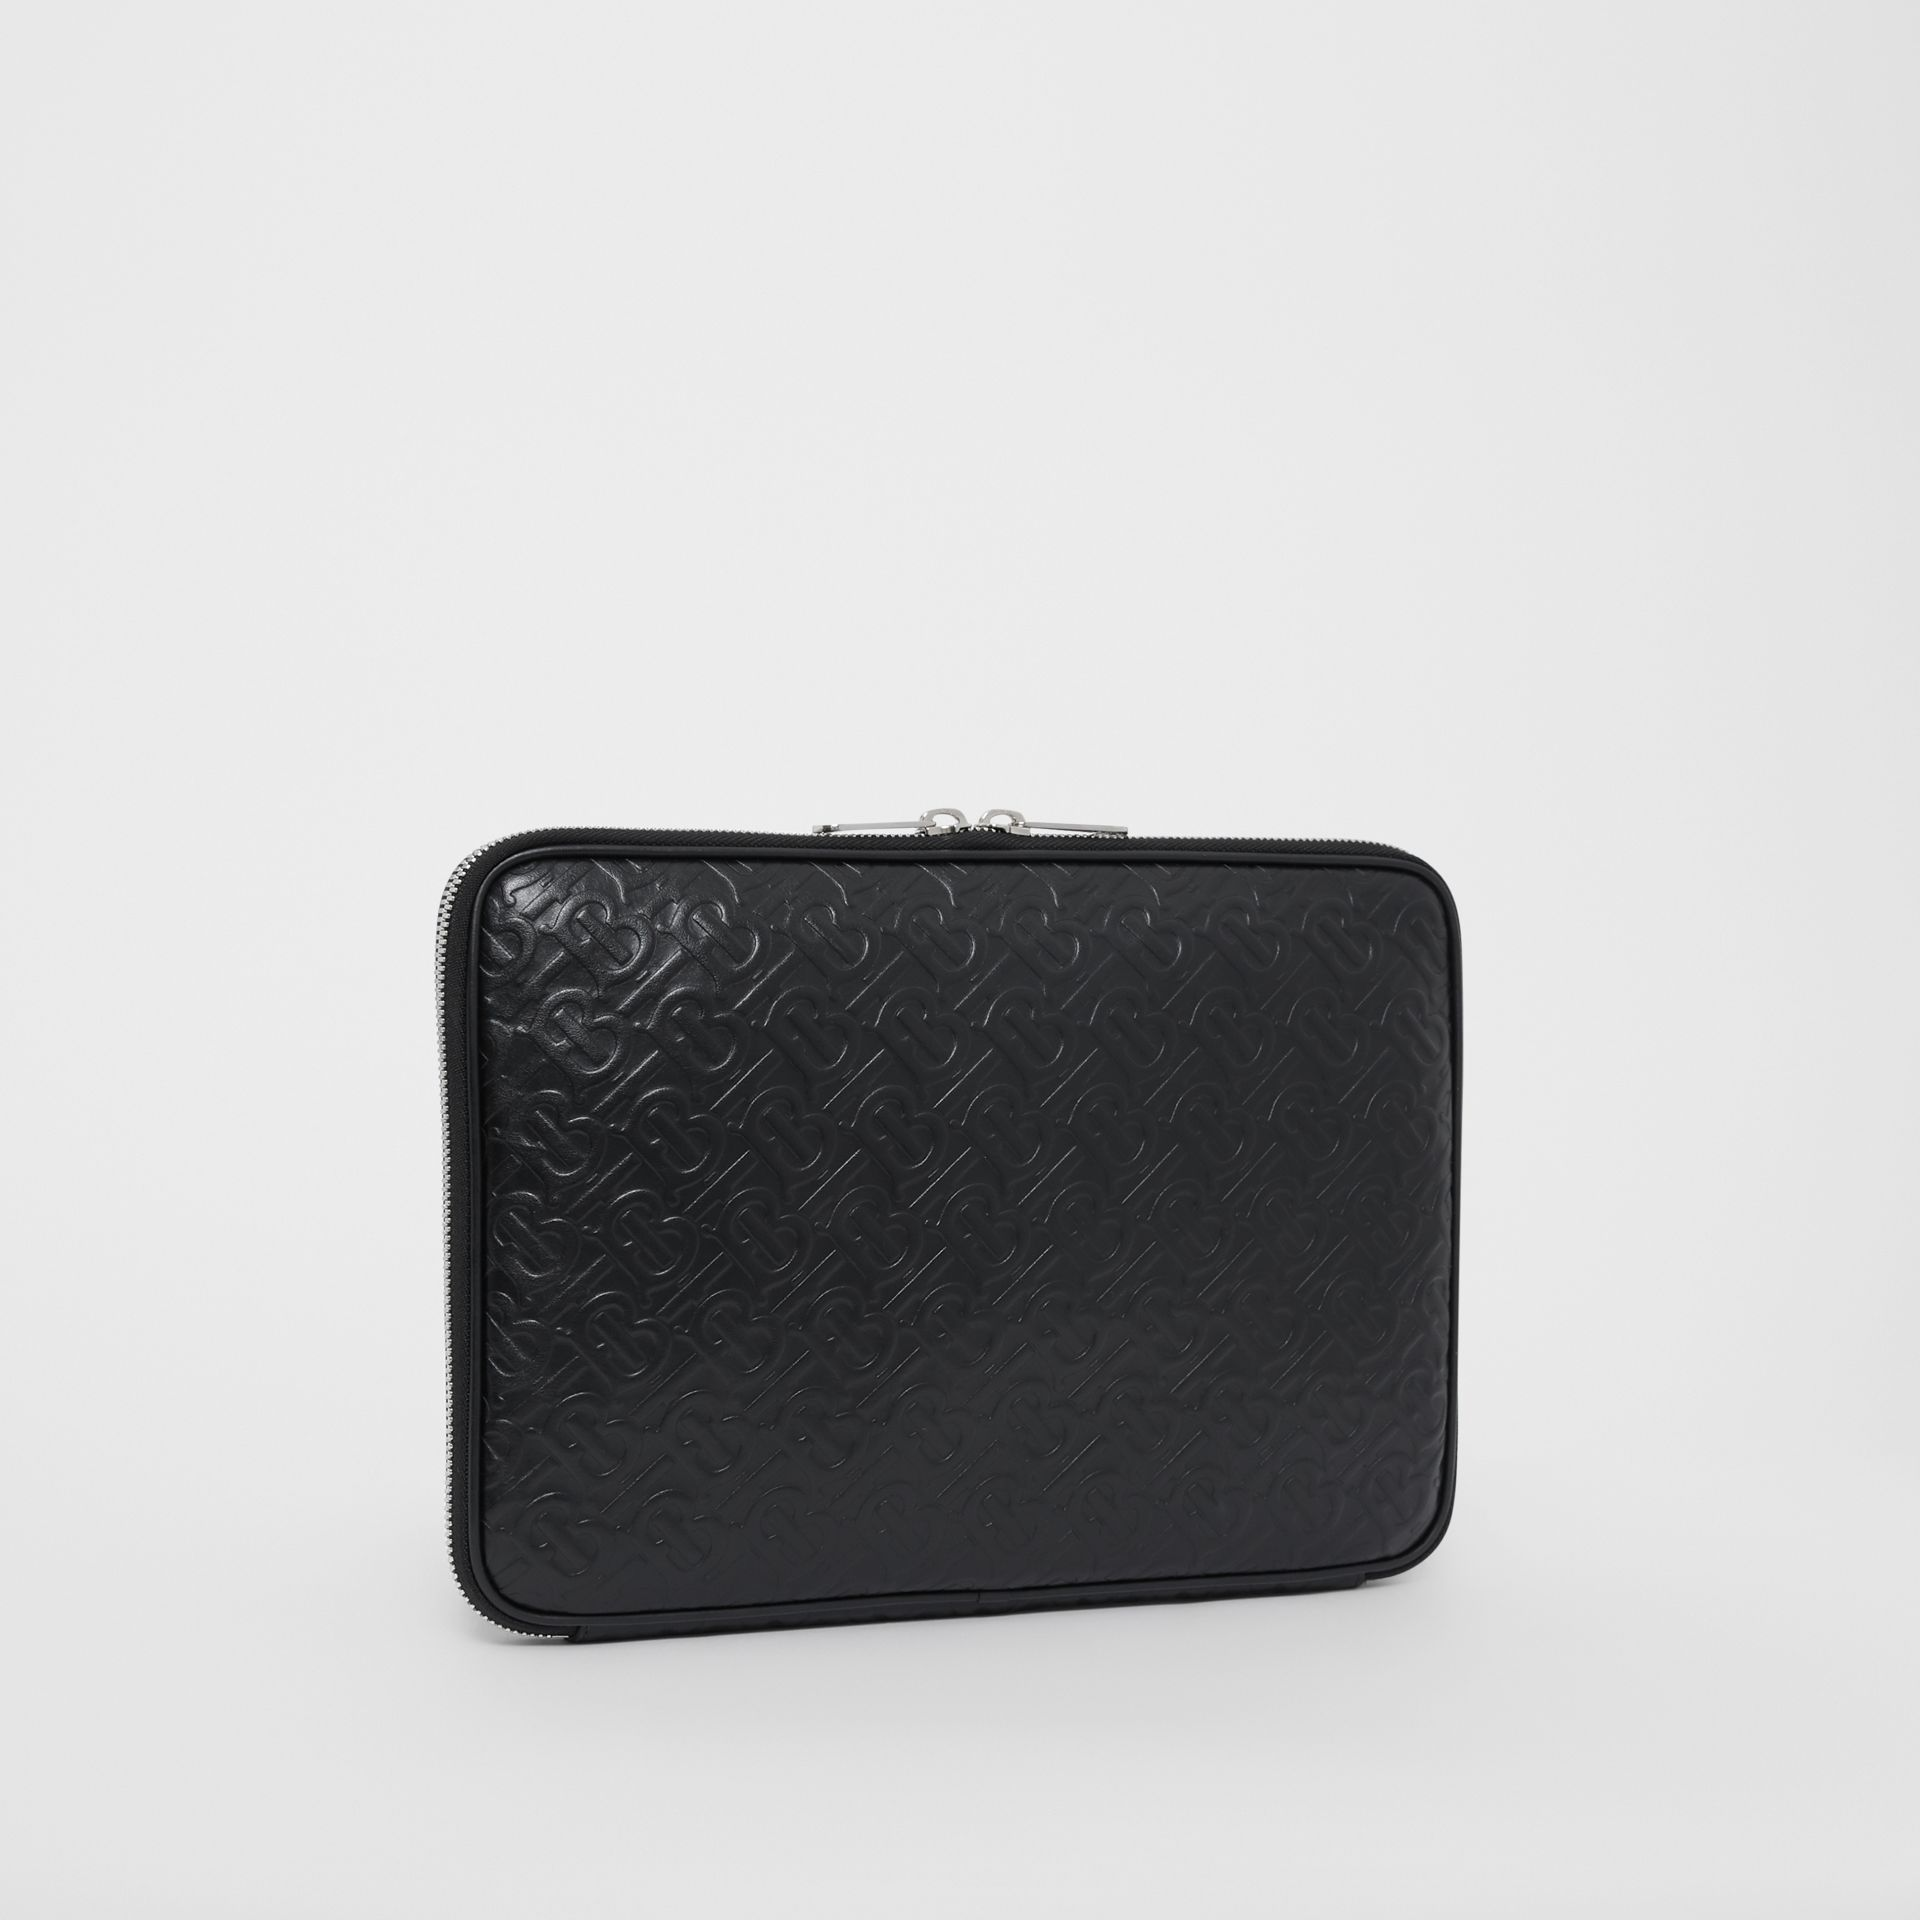 Monogram Leather Digital Case in Black - Men | Burberry - gallery image 4